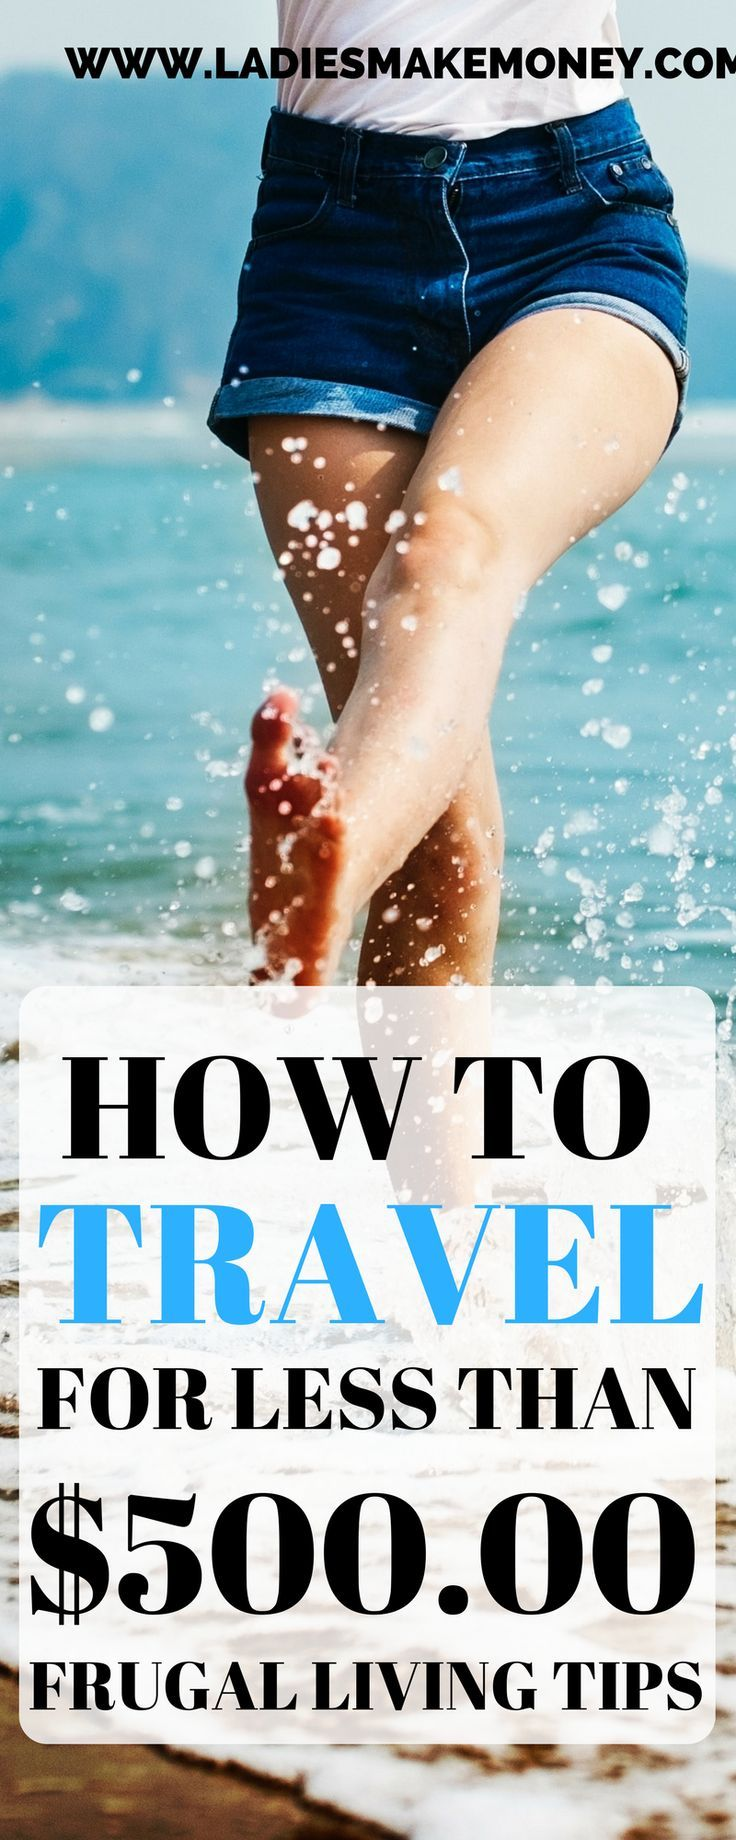 How save on your vacation, how to travel for less than $500.00. How book your next budget friendly vacation. The tips you need on how to travel on a low budget, spend less on vacation and get a destination vacation. Travelling on a budget in your 20s. The